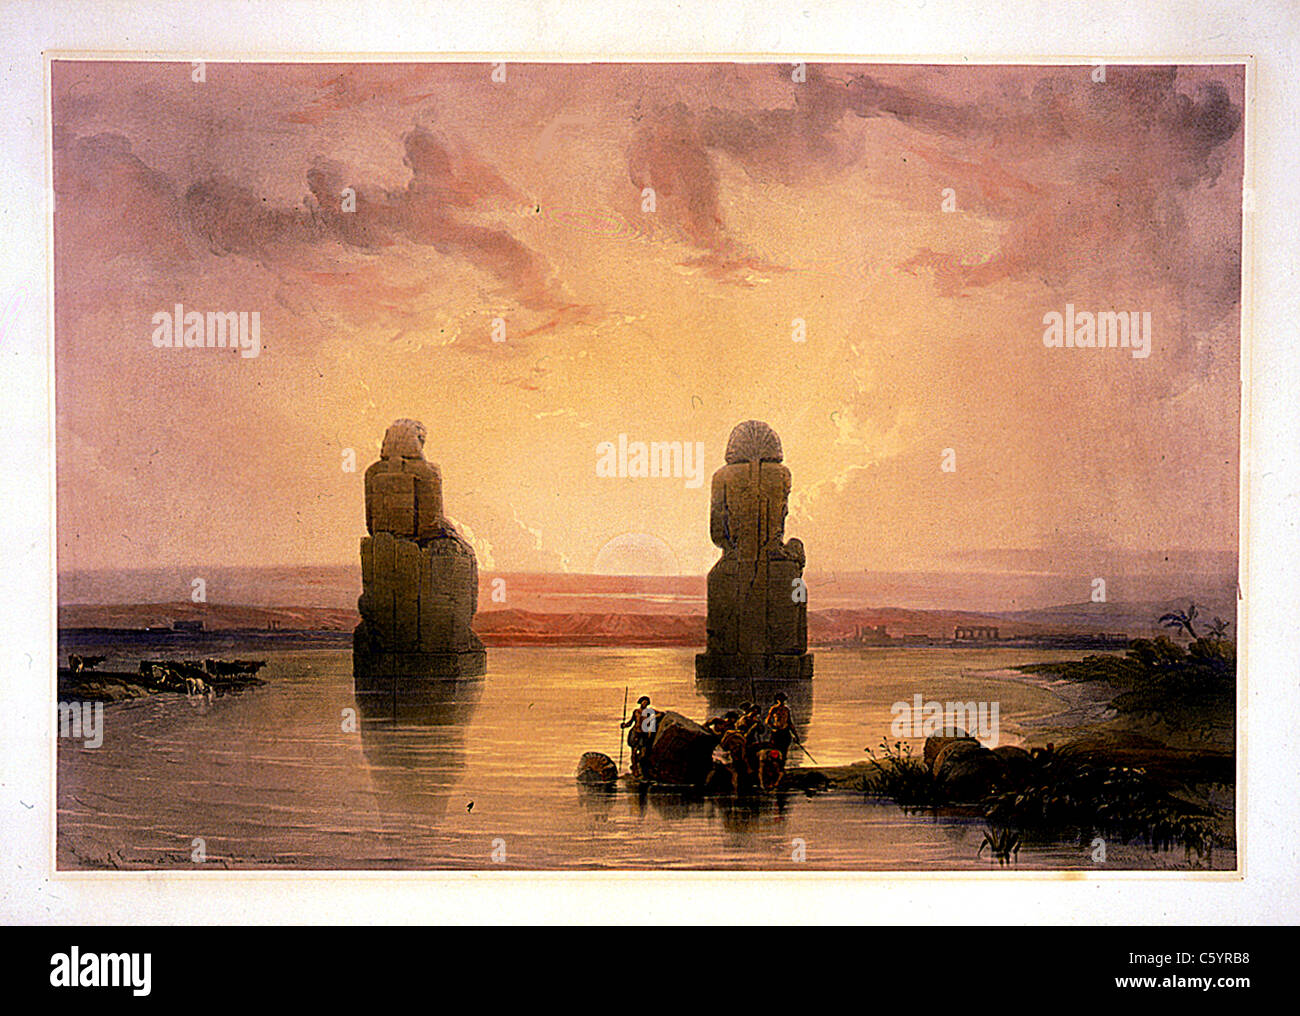 Statues of Memnon at Thebes, during the inundation - David Roberts and Louis Haghe Lithograph - Stock Image